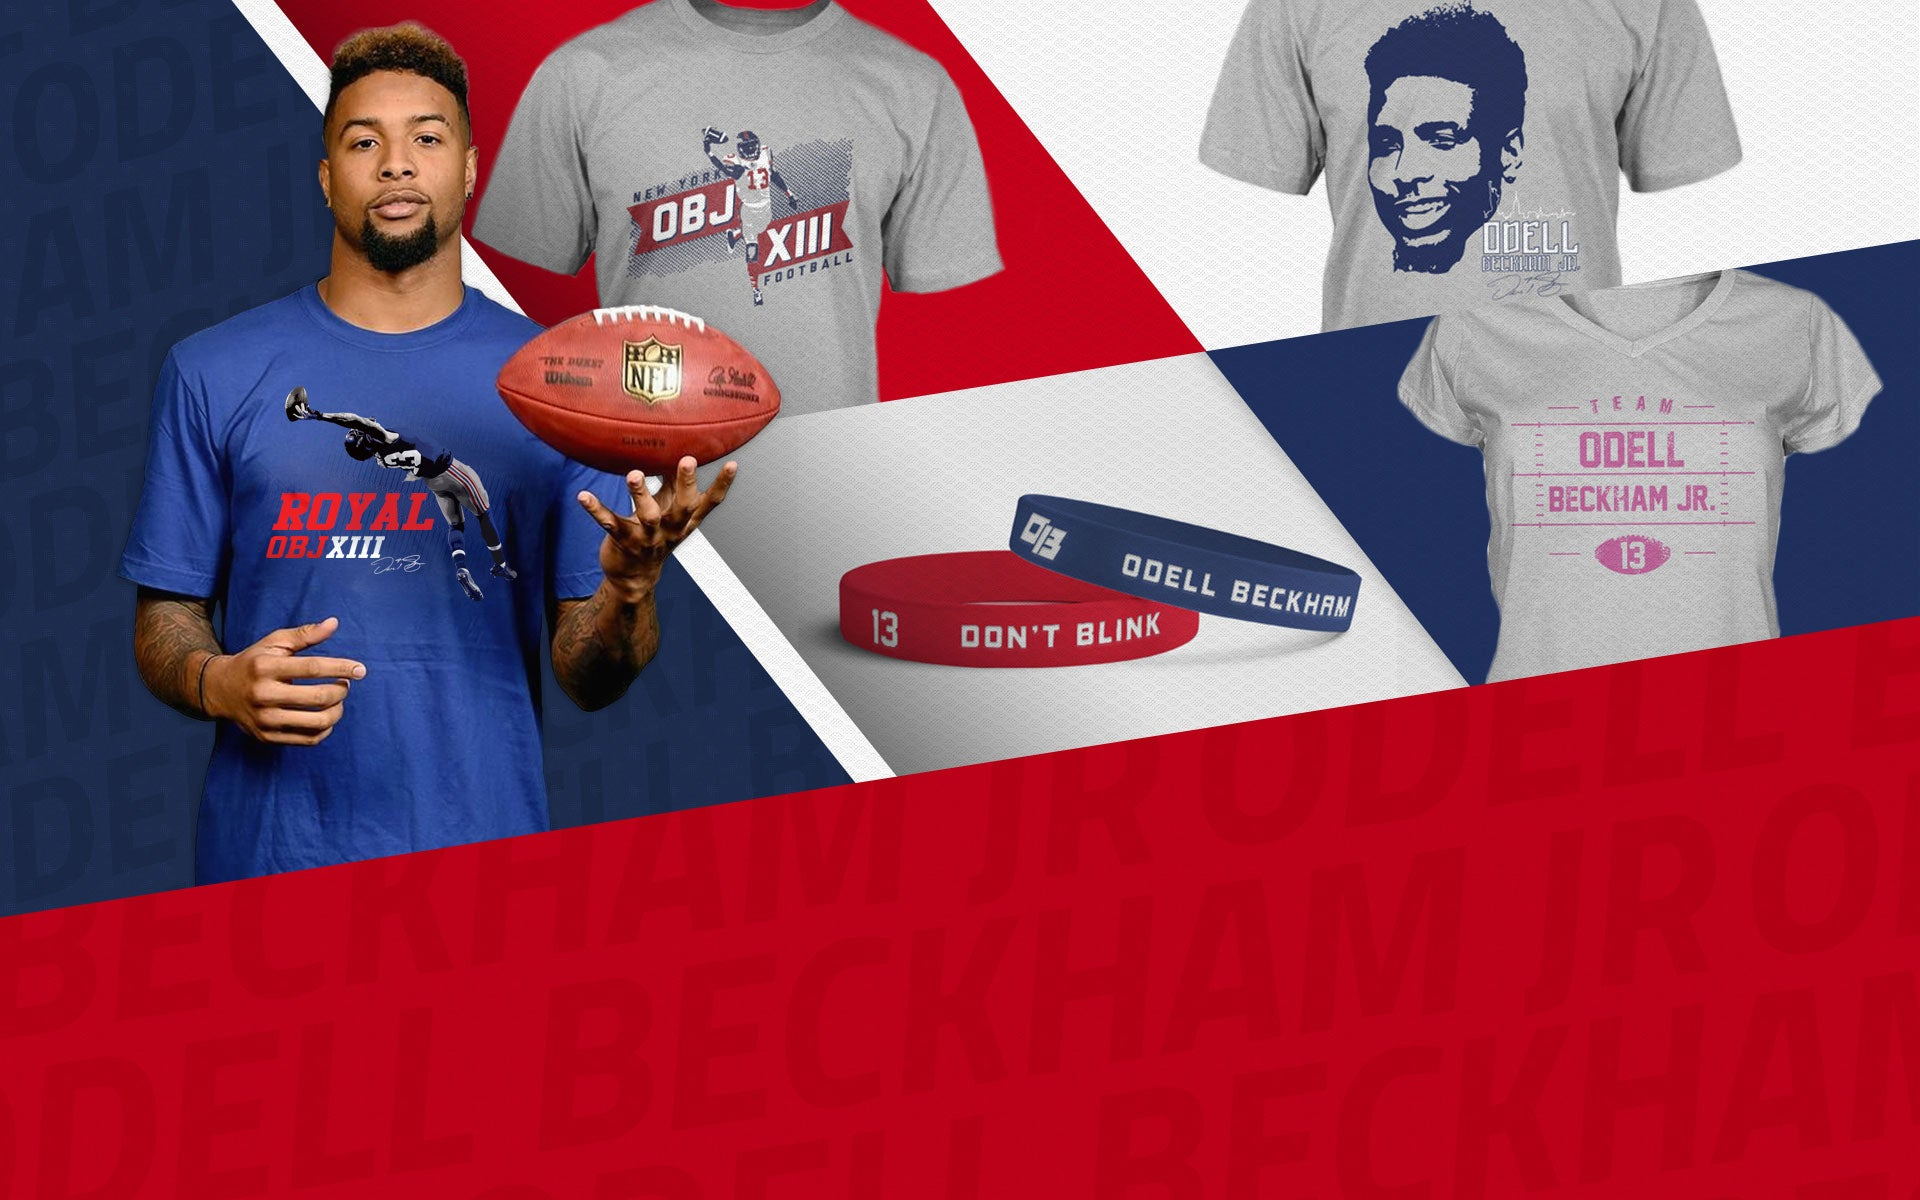 Odell Beckham Jr Apparel